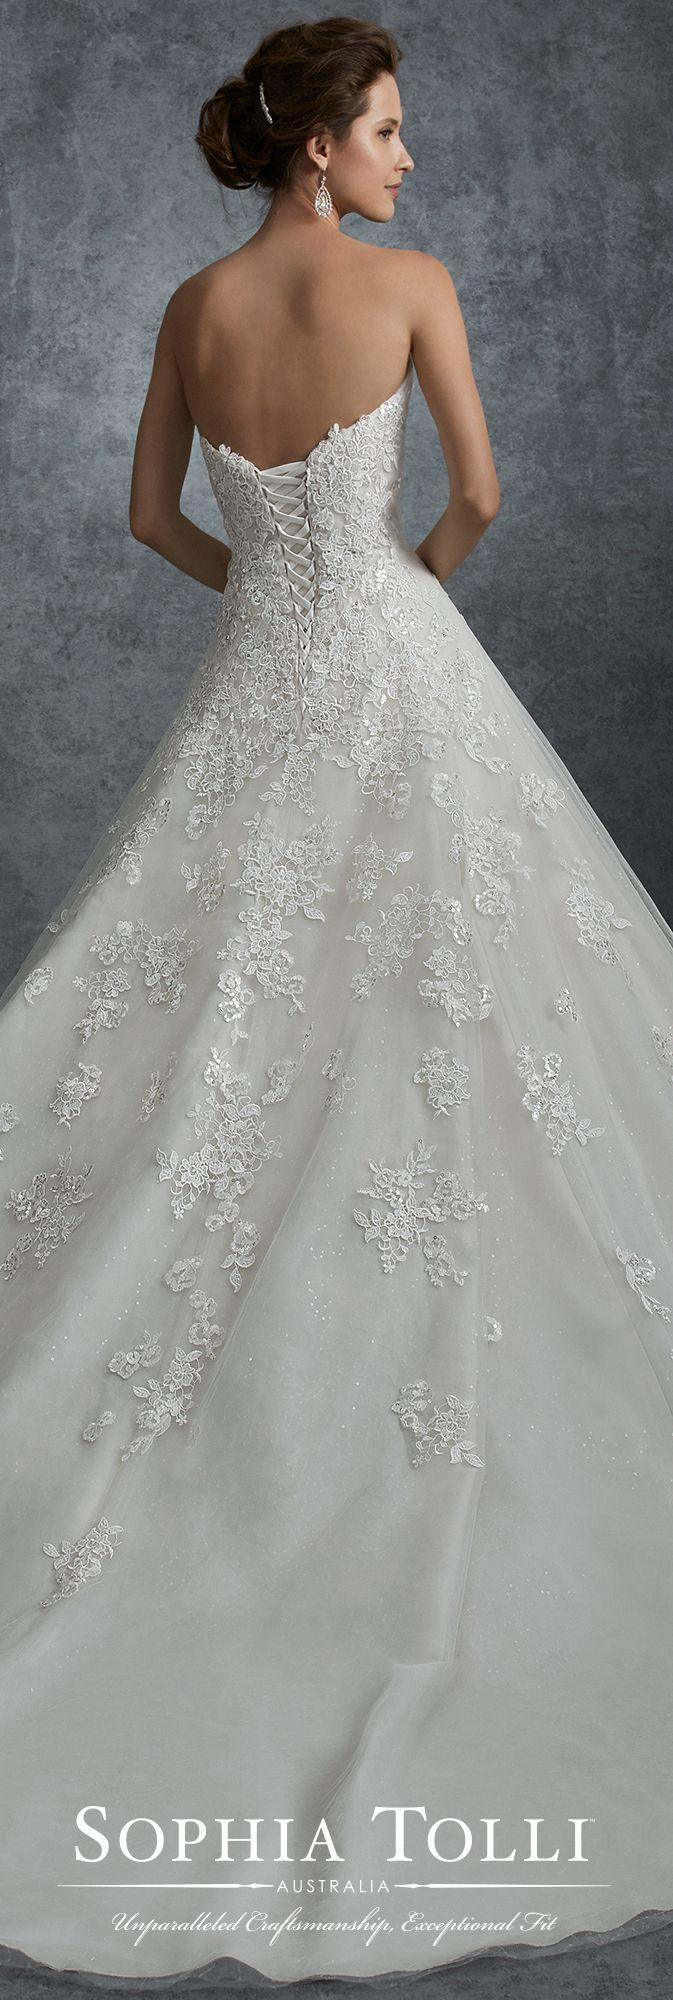 Wedding - Strapless Misty Tulle And Allover Shimmer Tulle - 21750